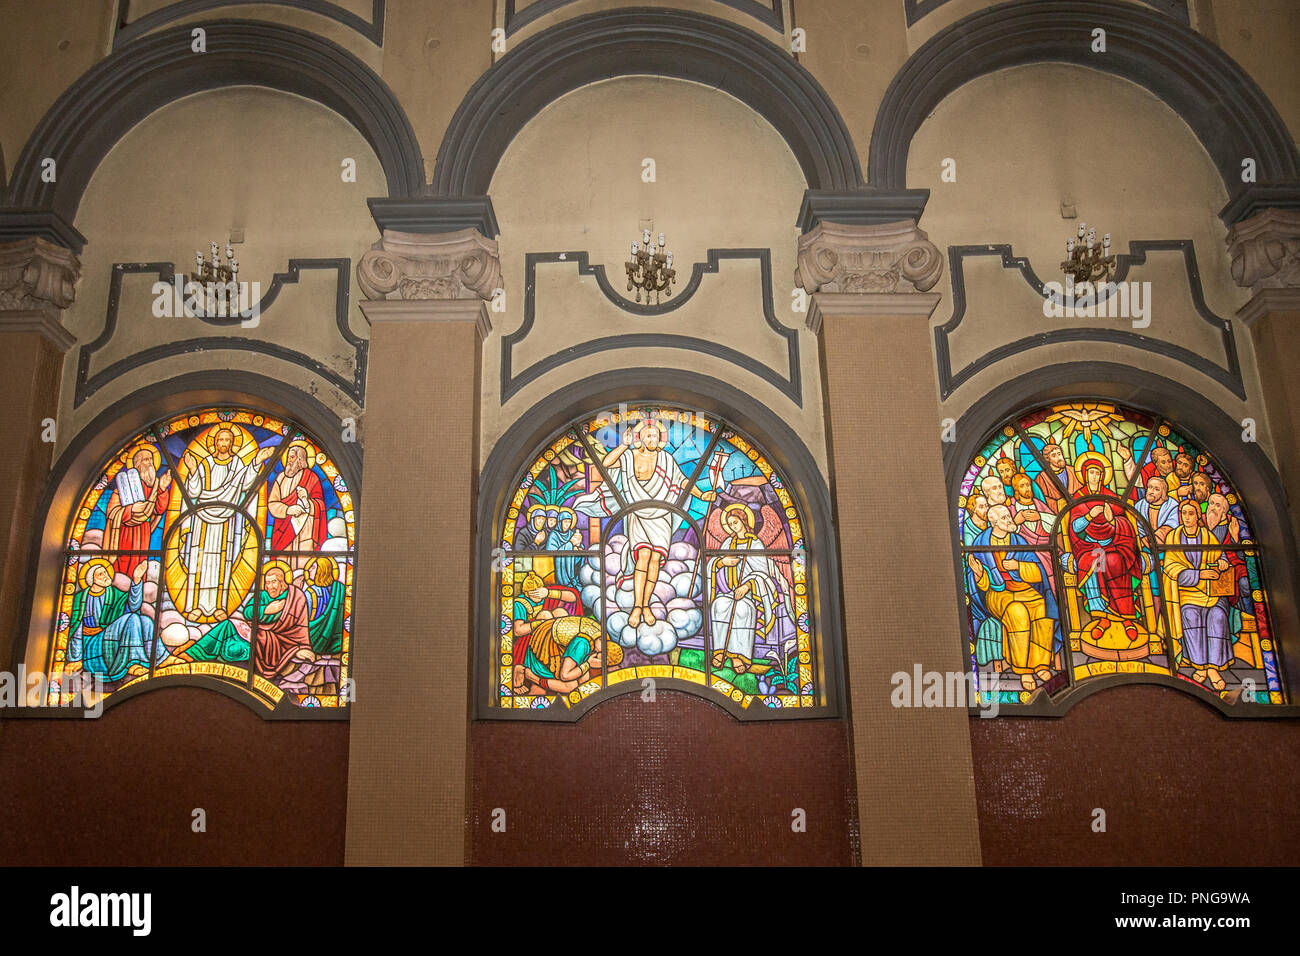 Stained-glass windows, Holy Trinity Cathedral, (Amharic: Kidist Selassie) Ethiopian Orthodox Tewahedo Church, resting place of Emperor Haile Selassie - Stock Image